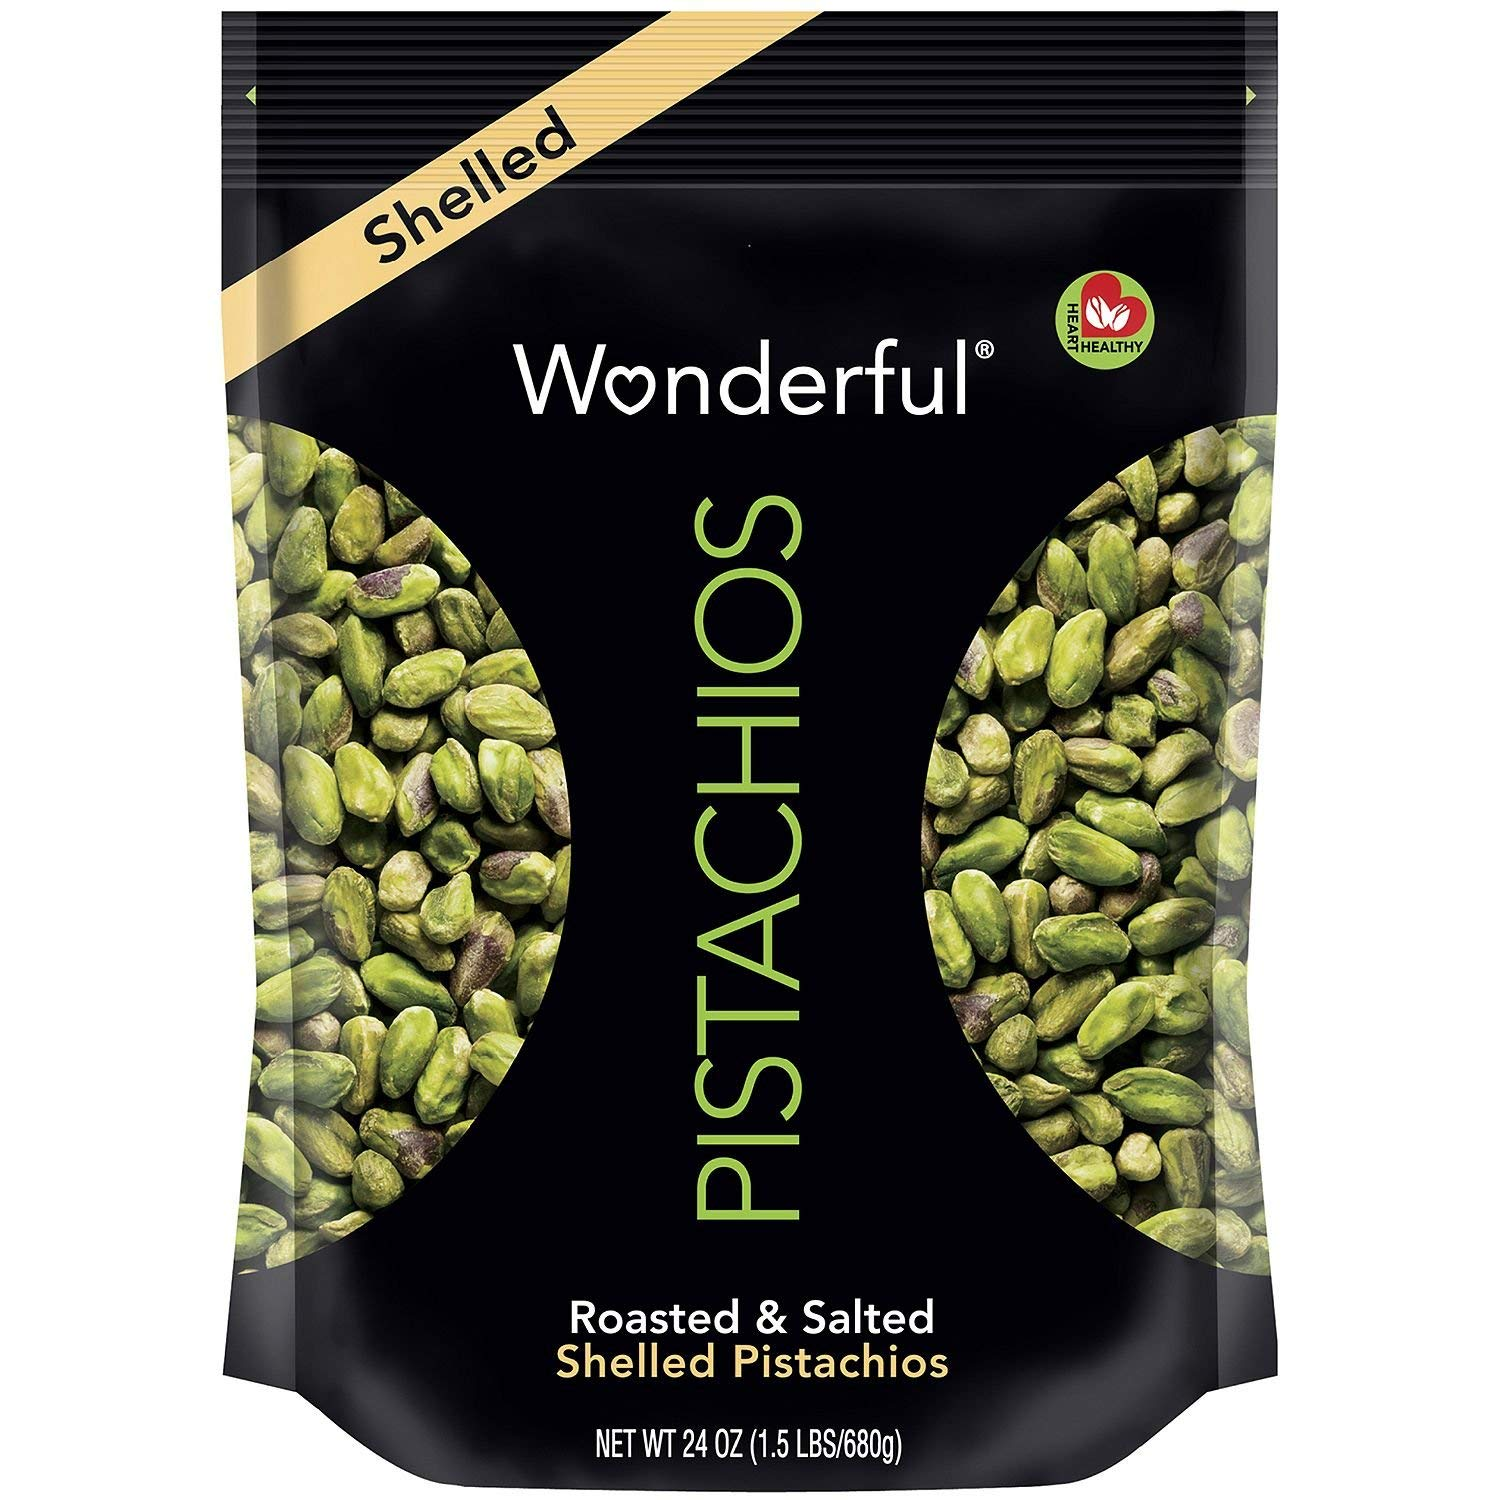 Wonderful Shelled All items in the store Pistachios 100% quality warranty! oz. 24